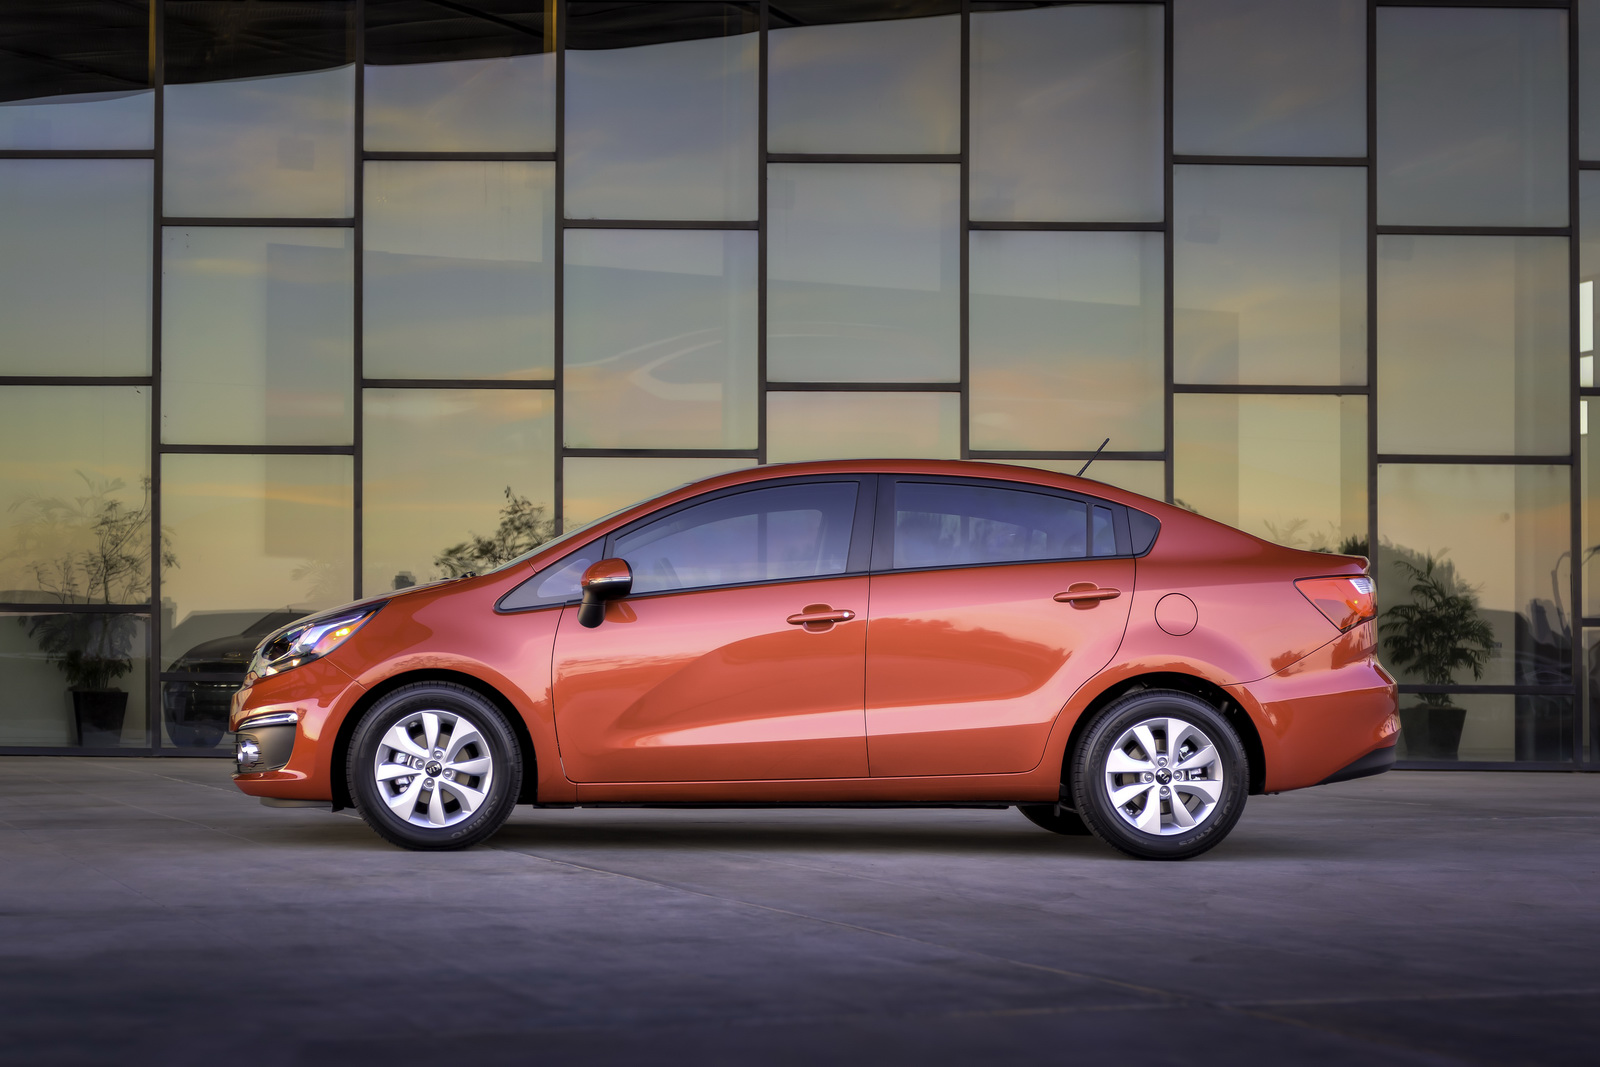 Kia Rio Iii Restyling 2015 Now Sedan Outstanding Cars Fuse Box For 2